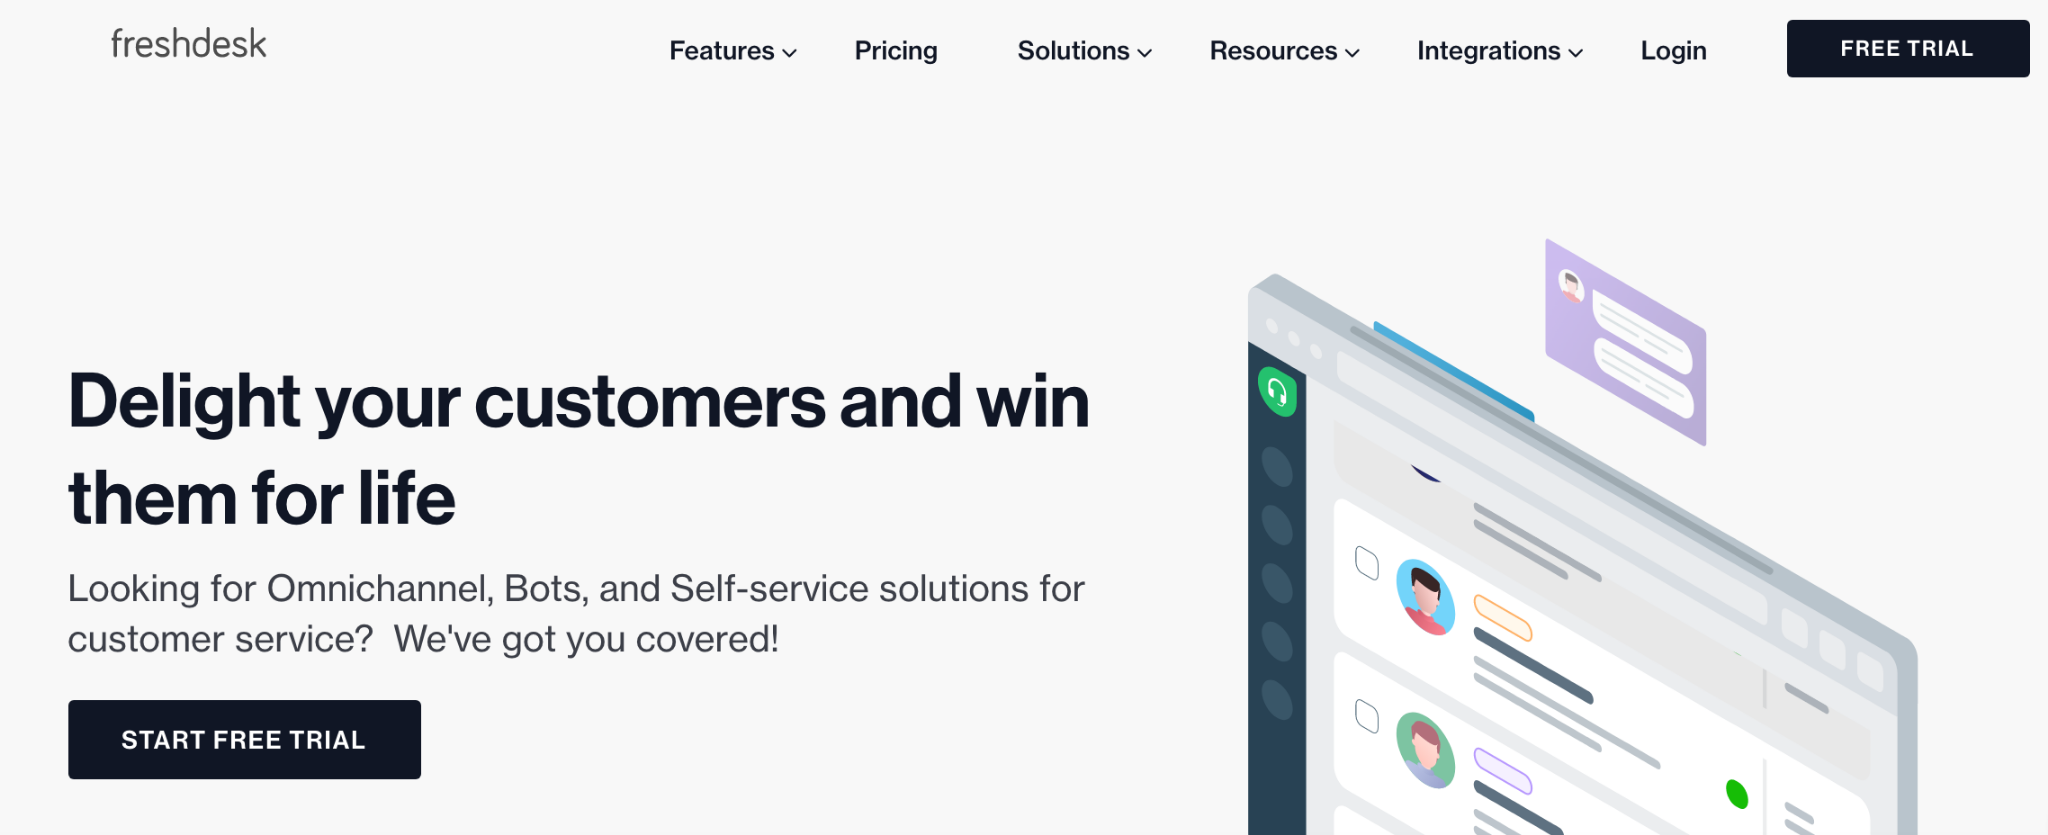 Freshdesk homepage: Delight your customers and win them for life